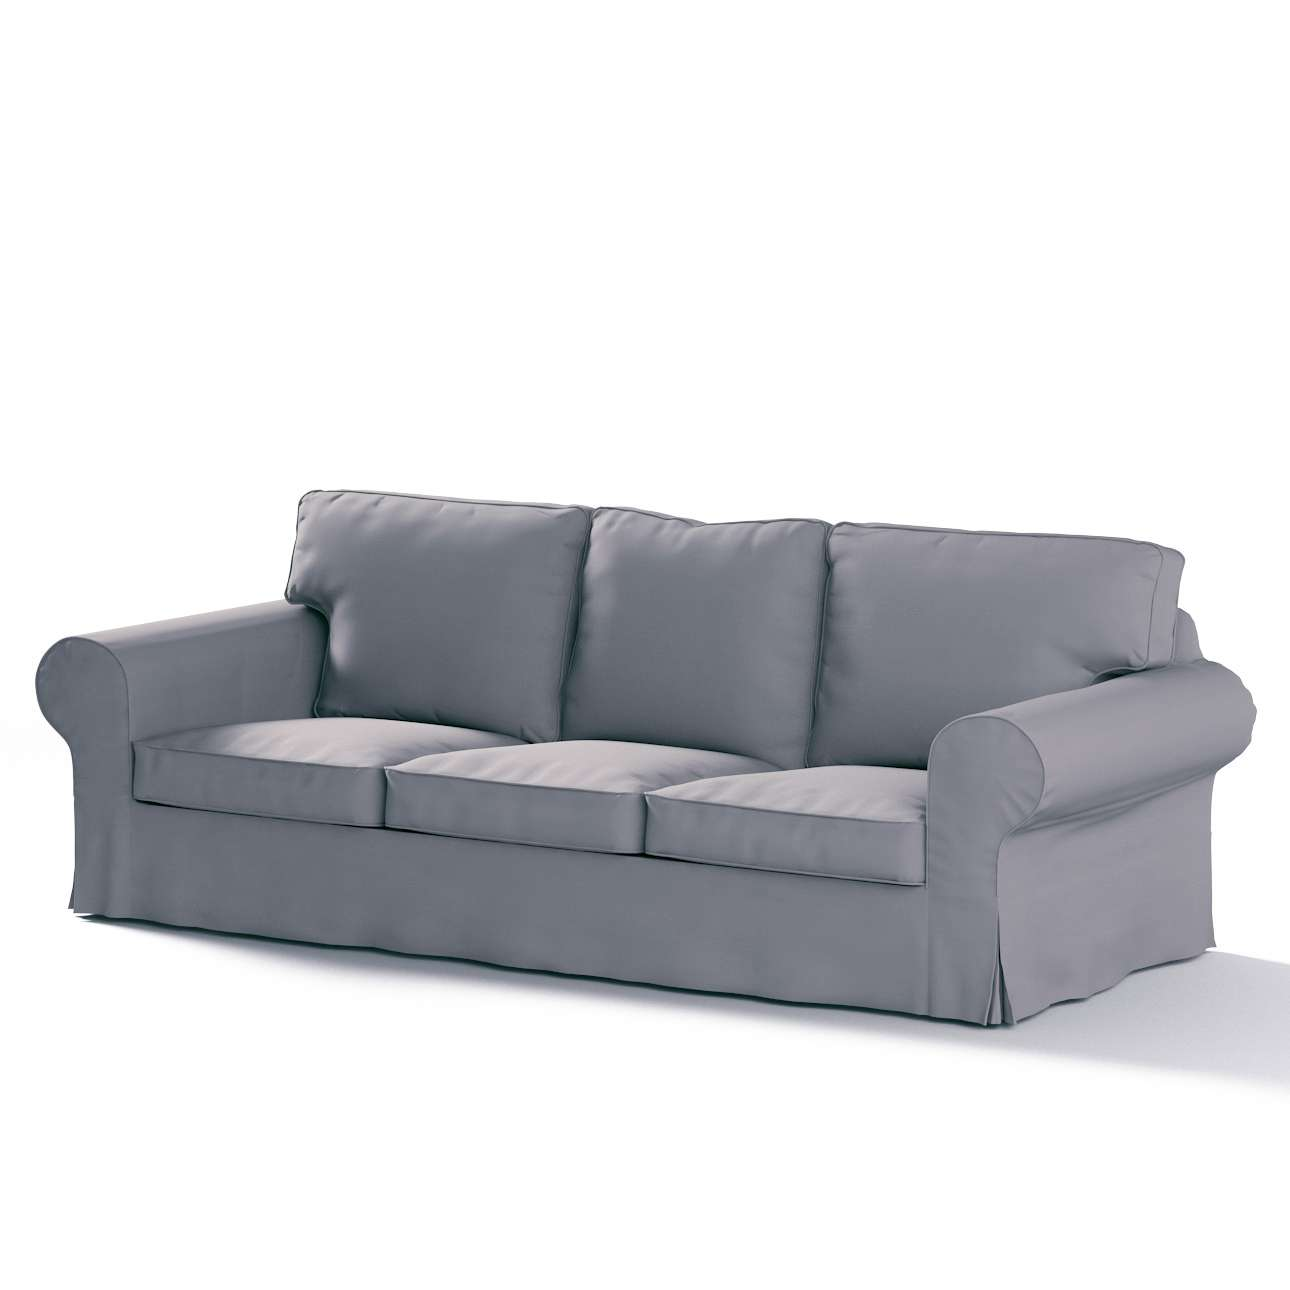 Ektorp Sofa Ektorp 3 Seater Sofa Bed Cover For Model On Sale In Ikea 2004 2012